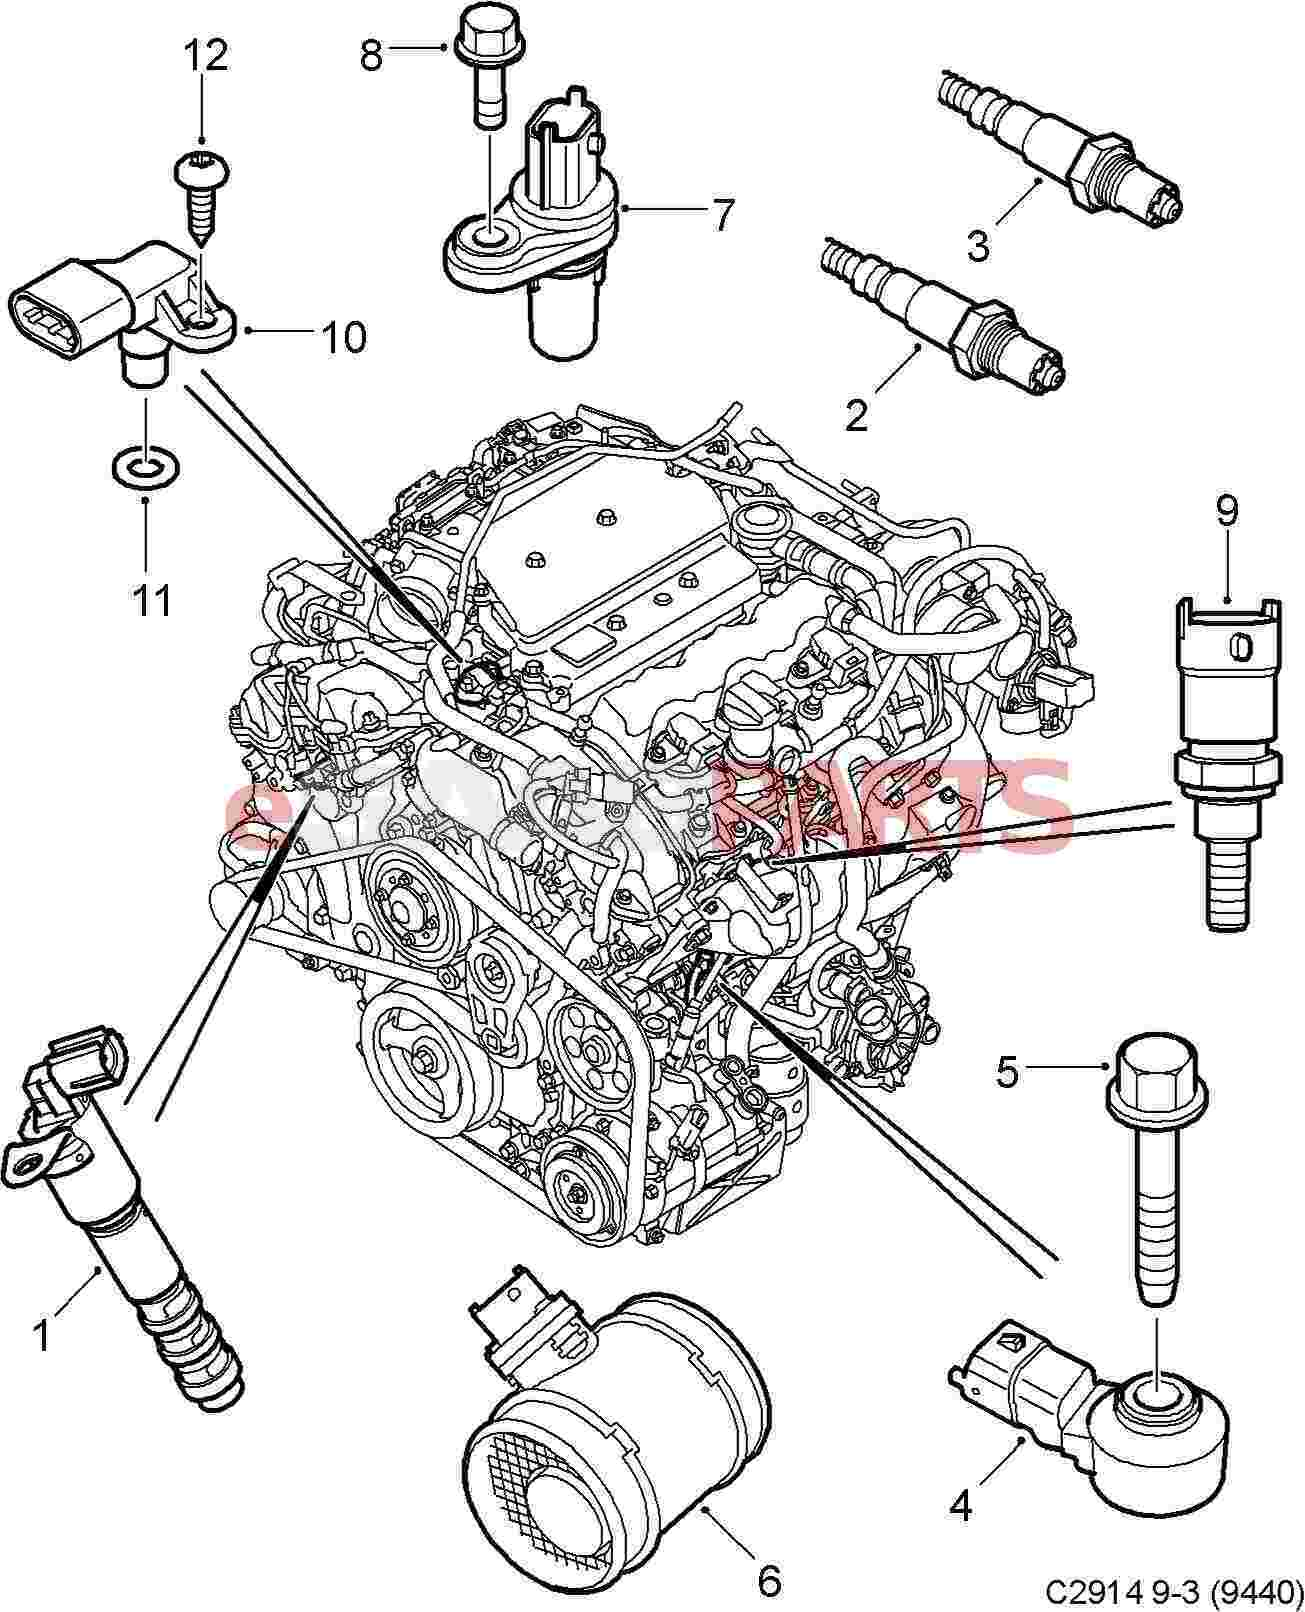 Free Download Saab 9 3 Linear Wiring Diagram